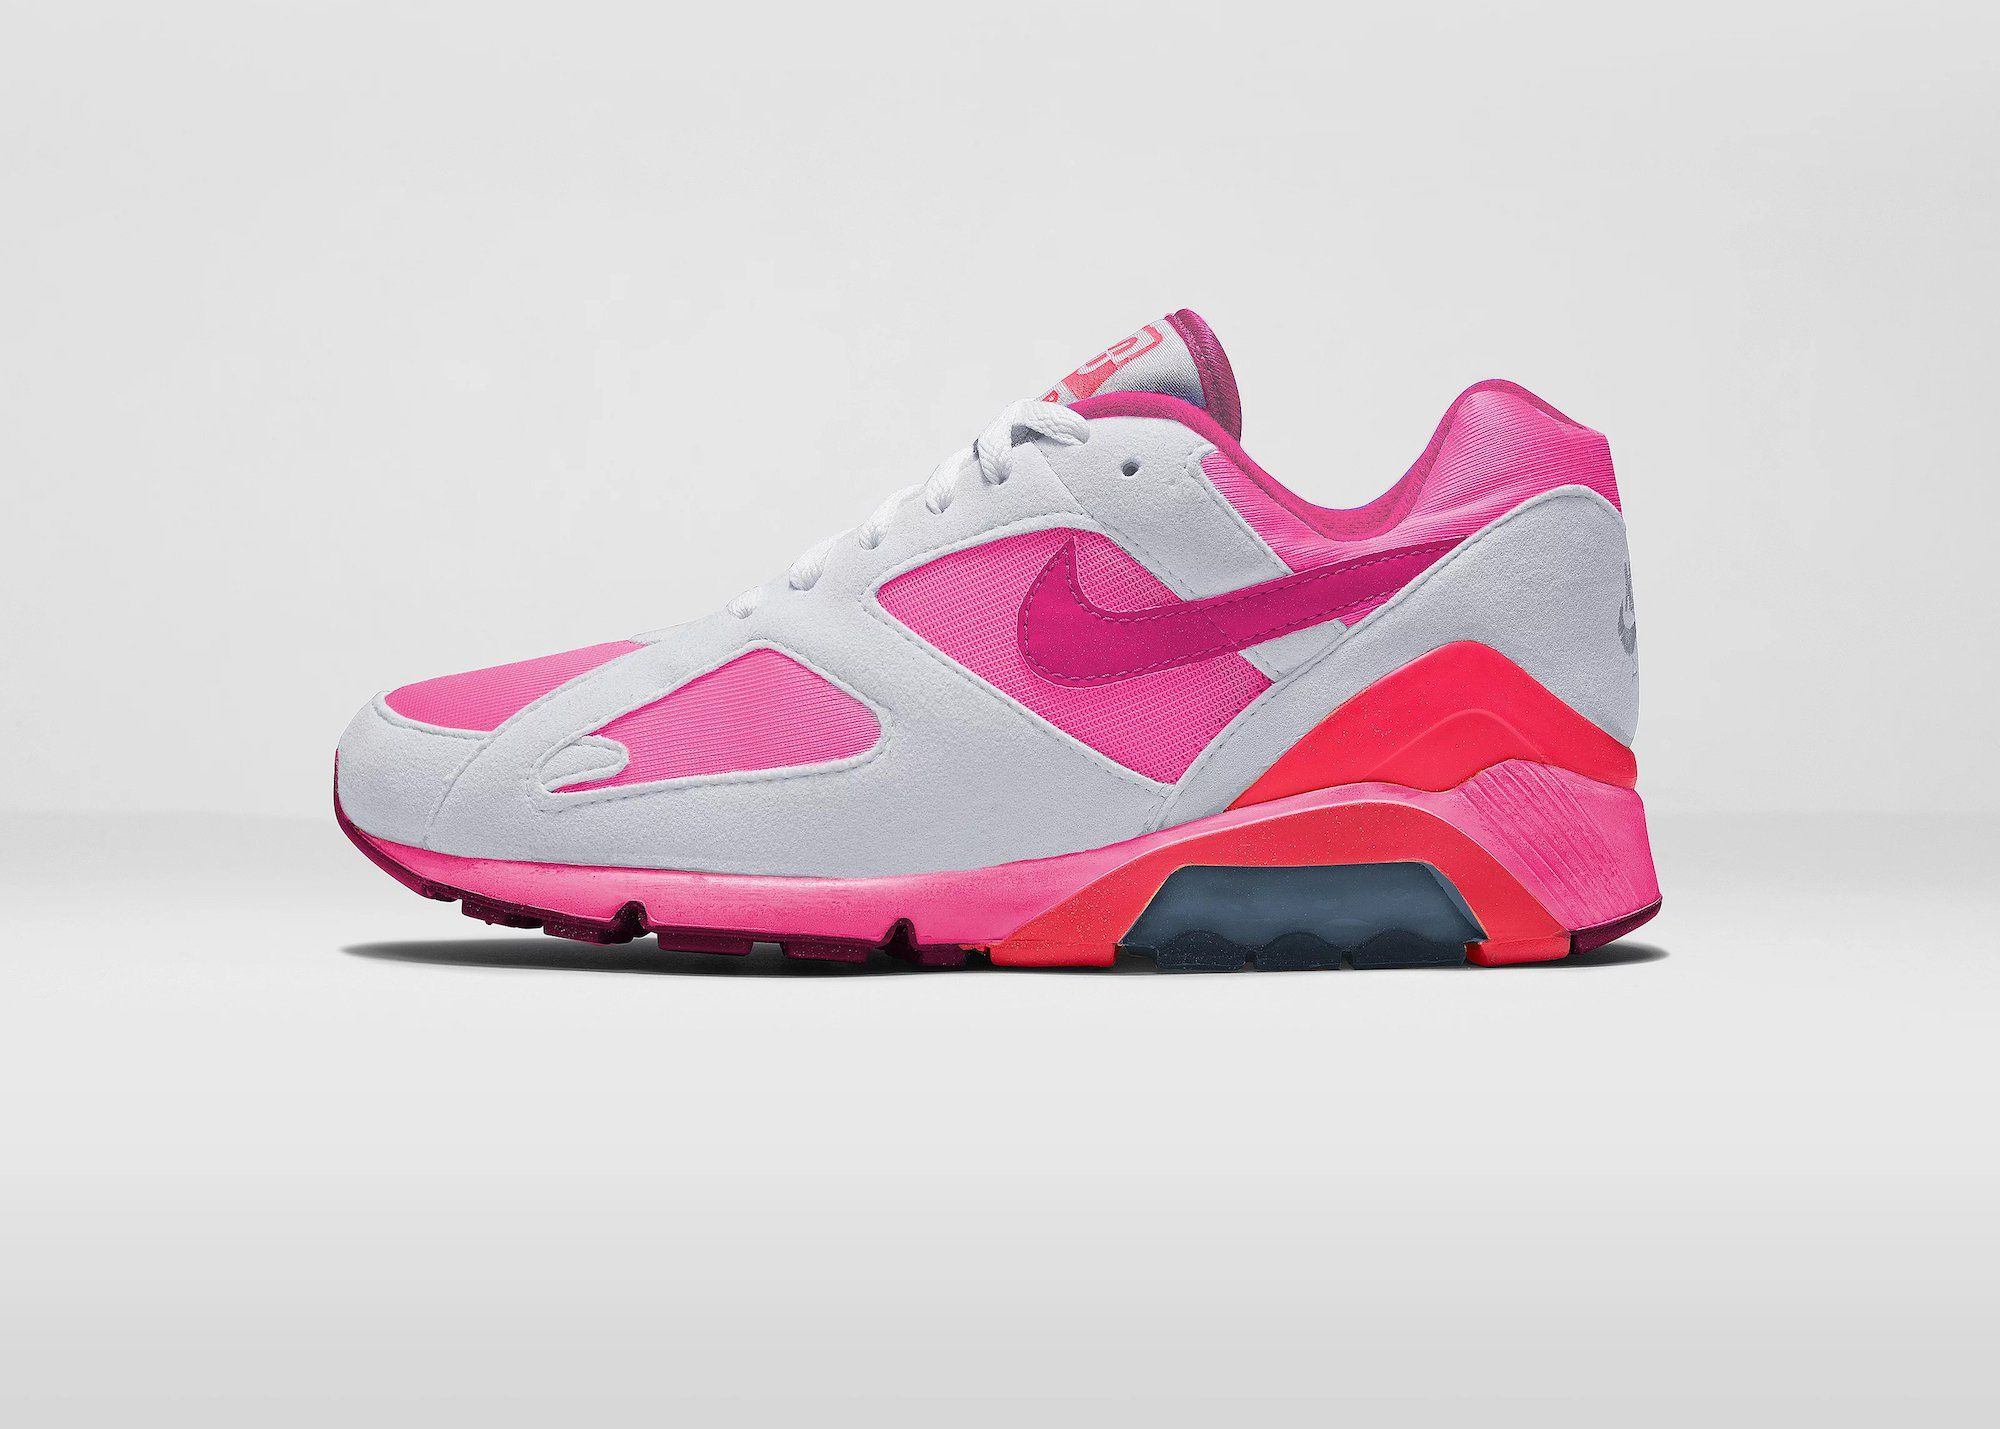 timeless design 48c63 52b7c Nike Air Max 180 | SNEAKER HEAD | Nike air max, Air max 180, Nike